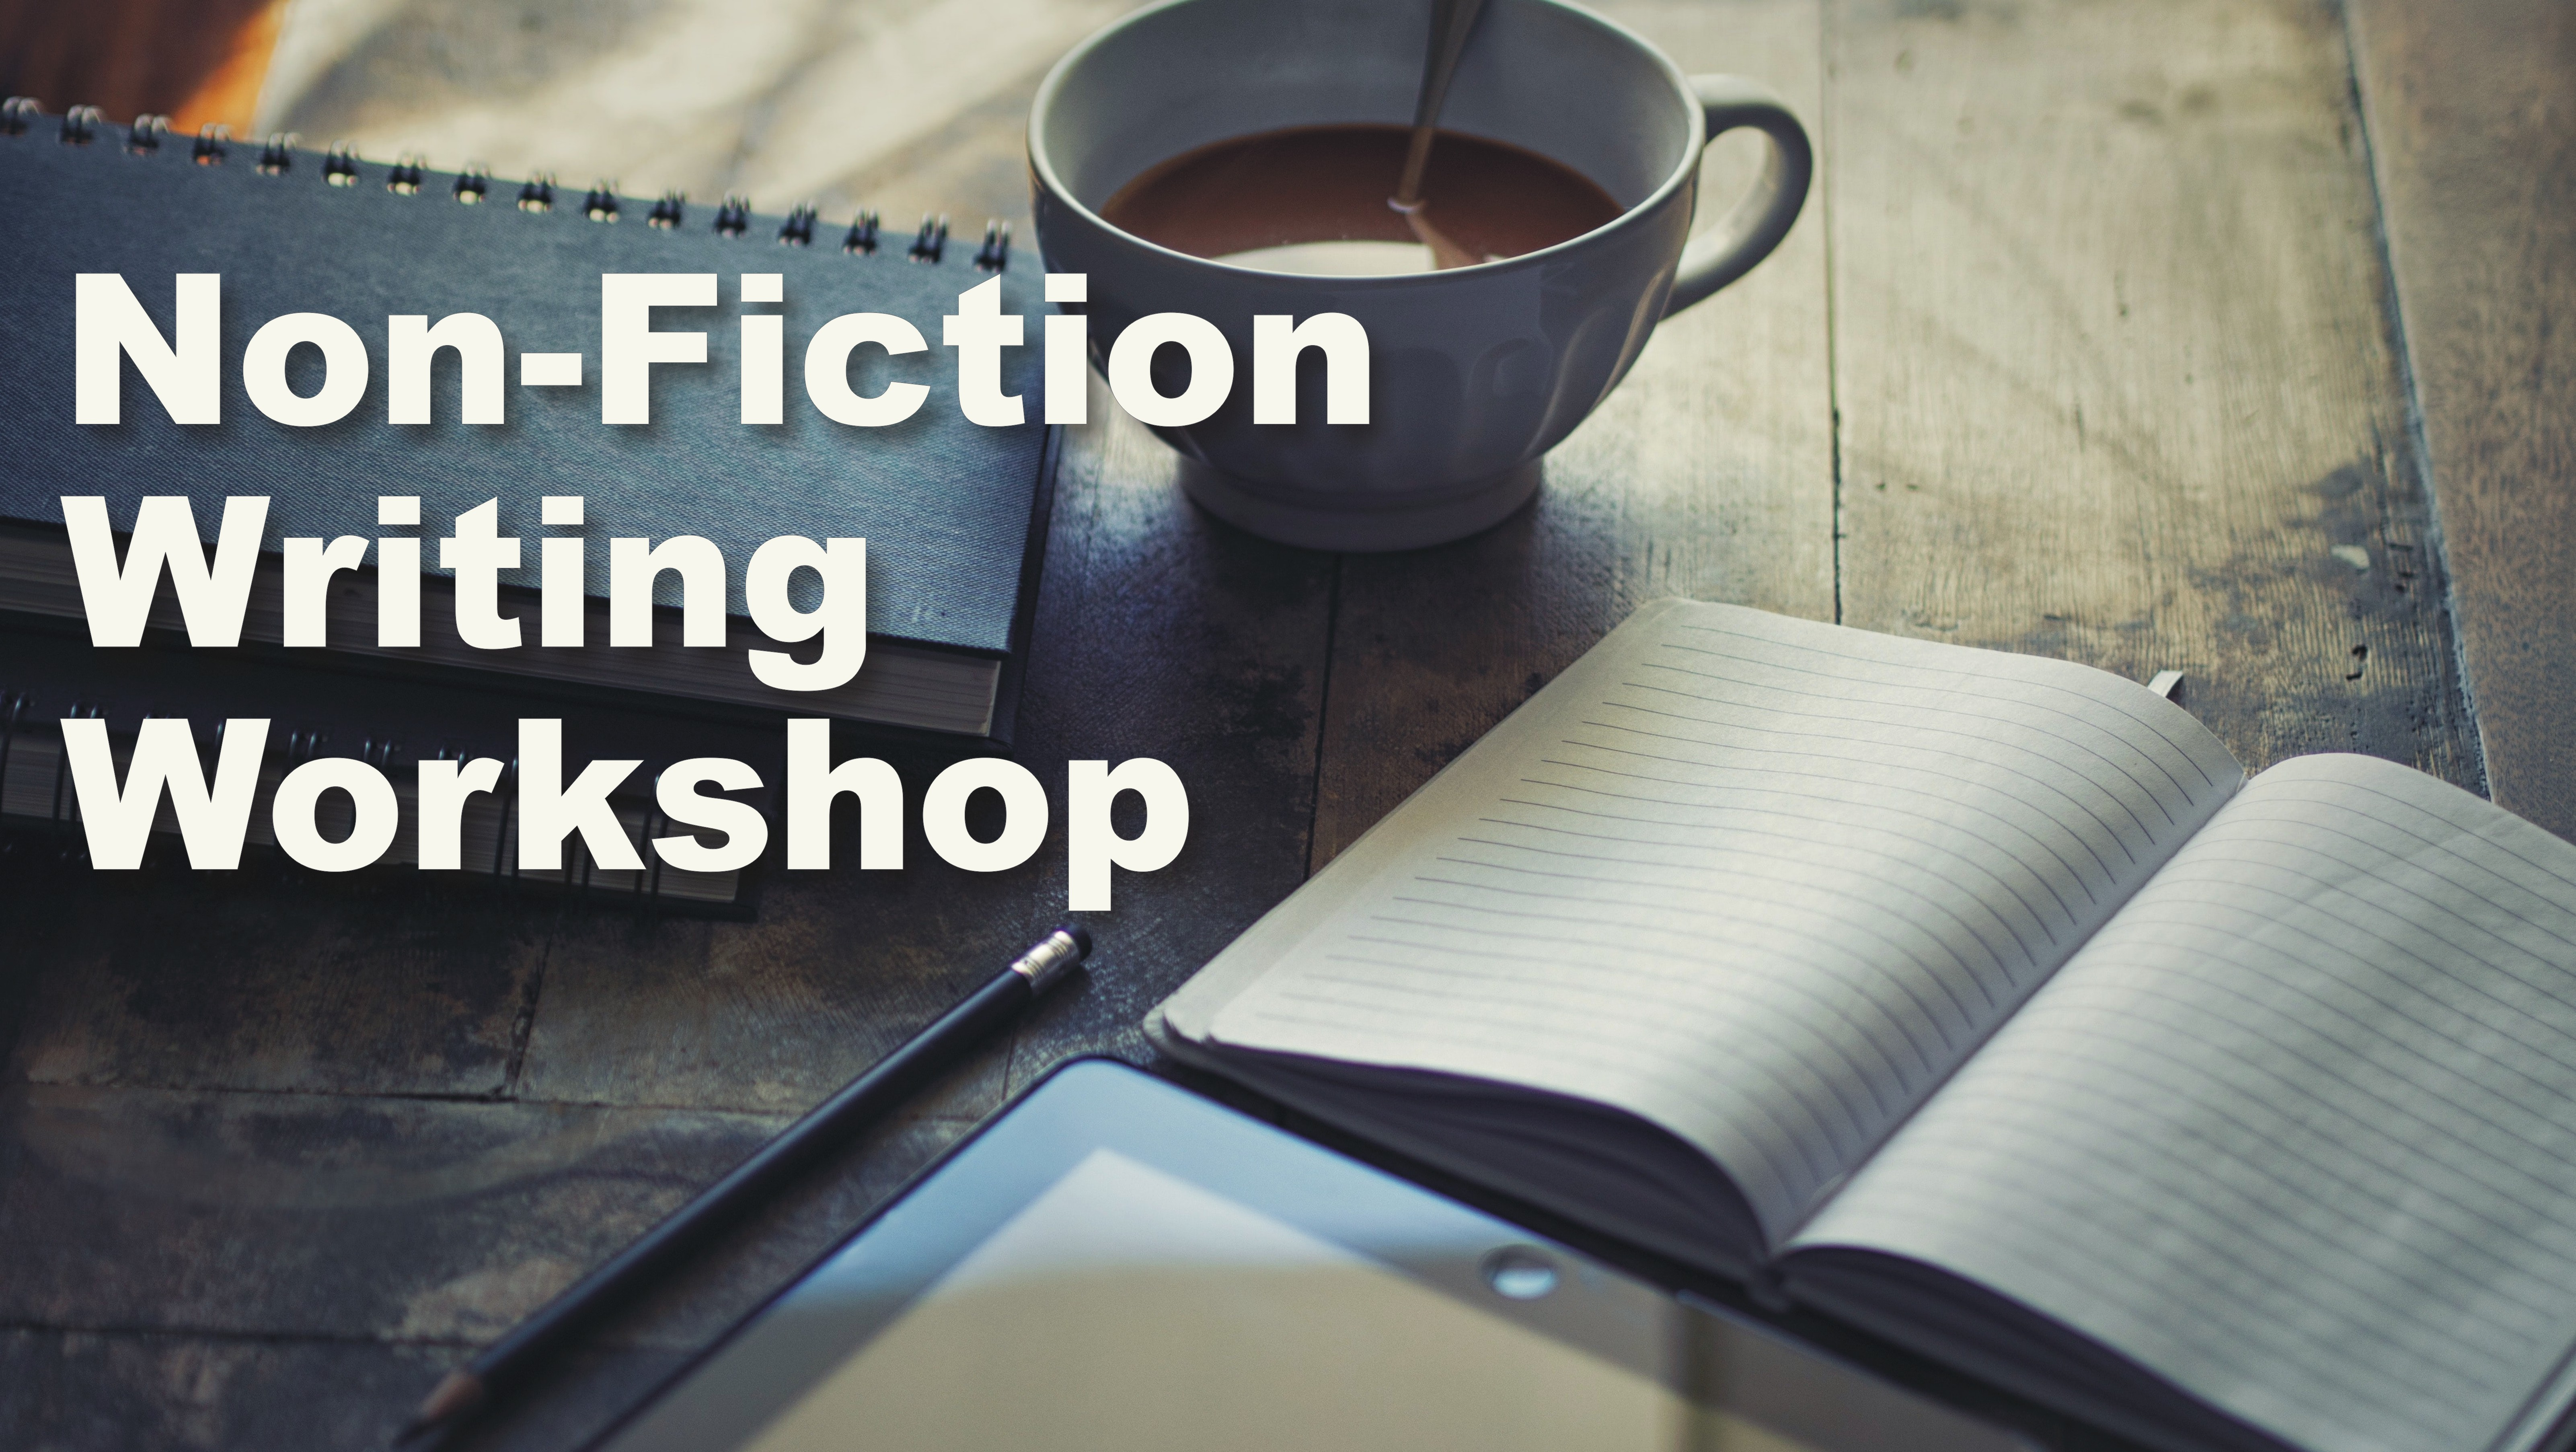 Non-Fiction Writing Workshop Logo